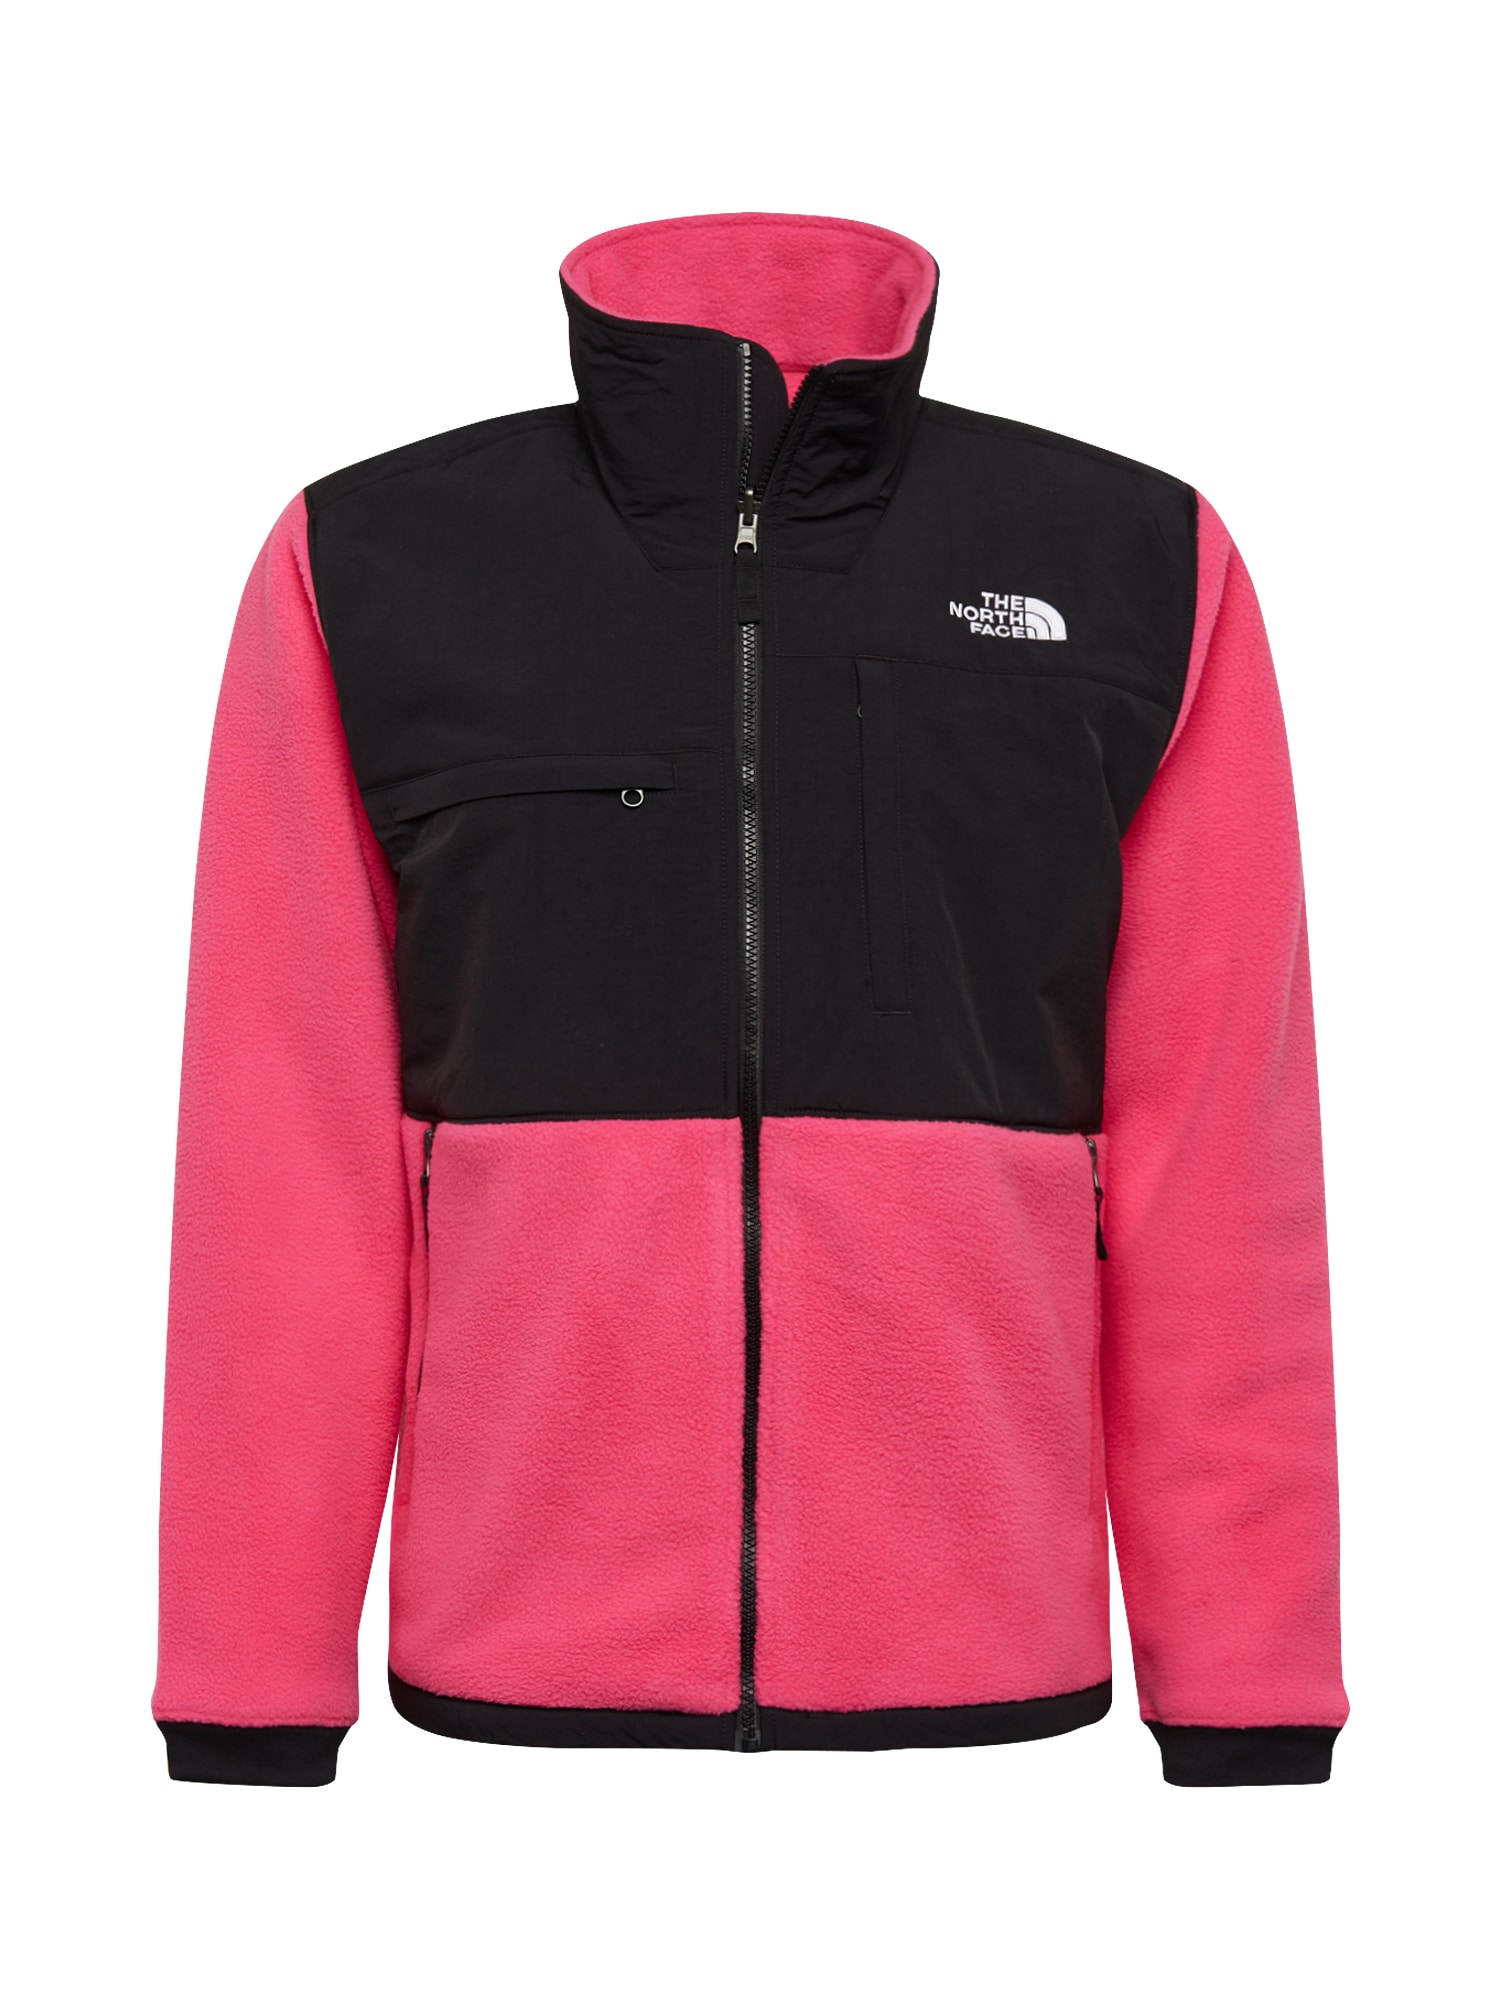 THE NORTH FACE Outdoorová bunda Denali pink černá The North Face